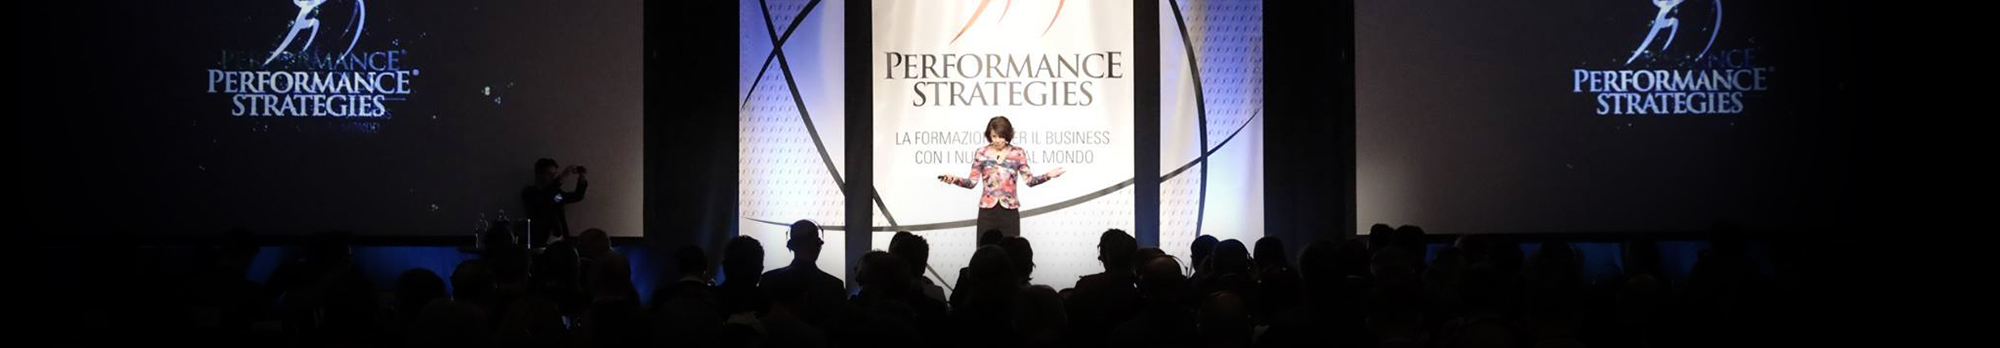 Colleen Stanley speaking at Performance Strategies